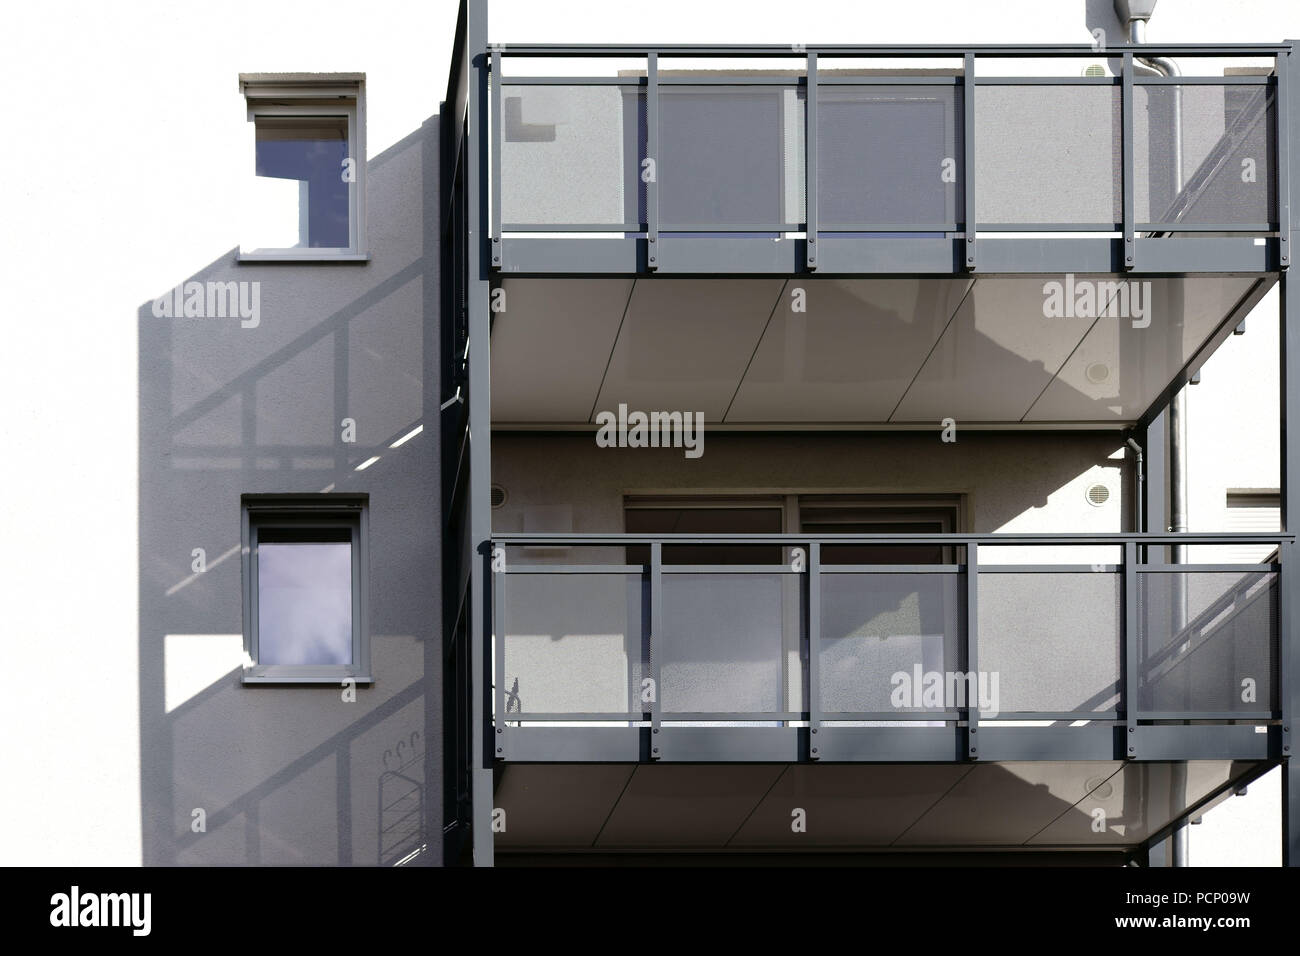 A new and modern balcony of an apartment and apartment building casting shadows. Stock Photo